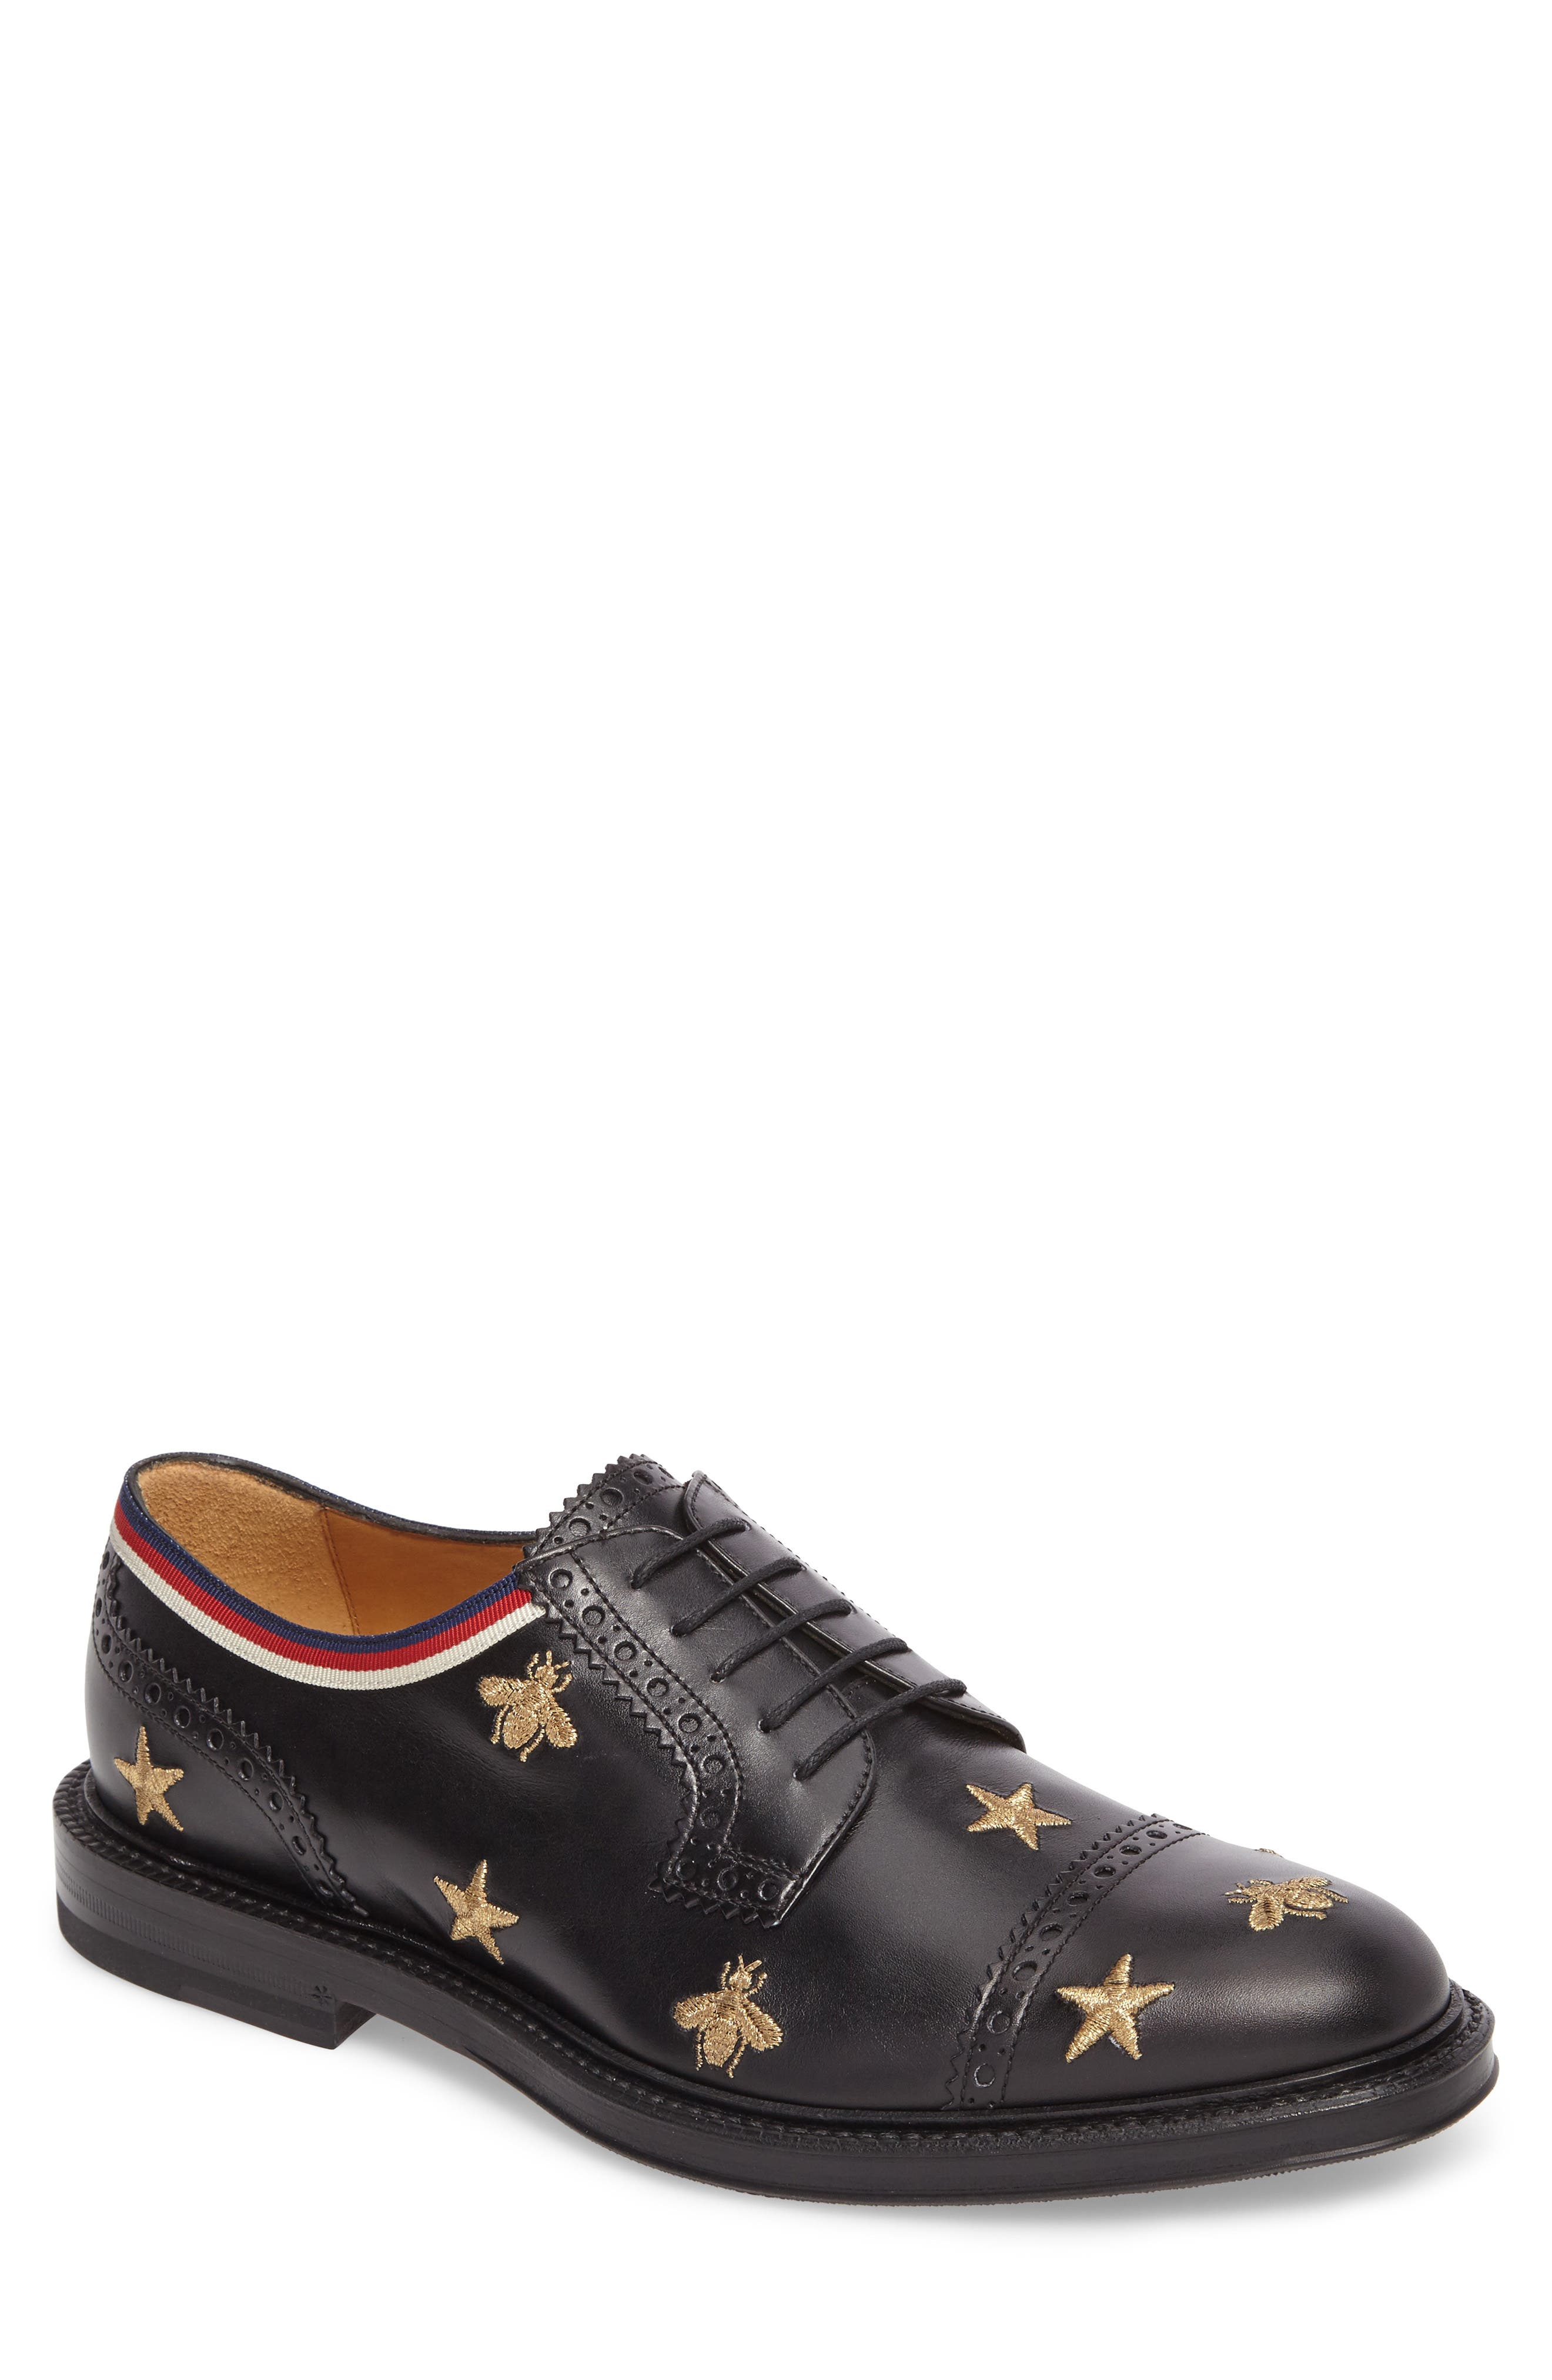 Embroidered Leather Brogue Shoe,                             Main thumbnail 1, color,                             009